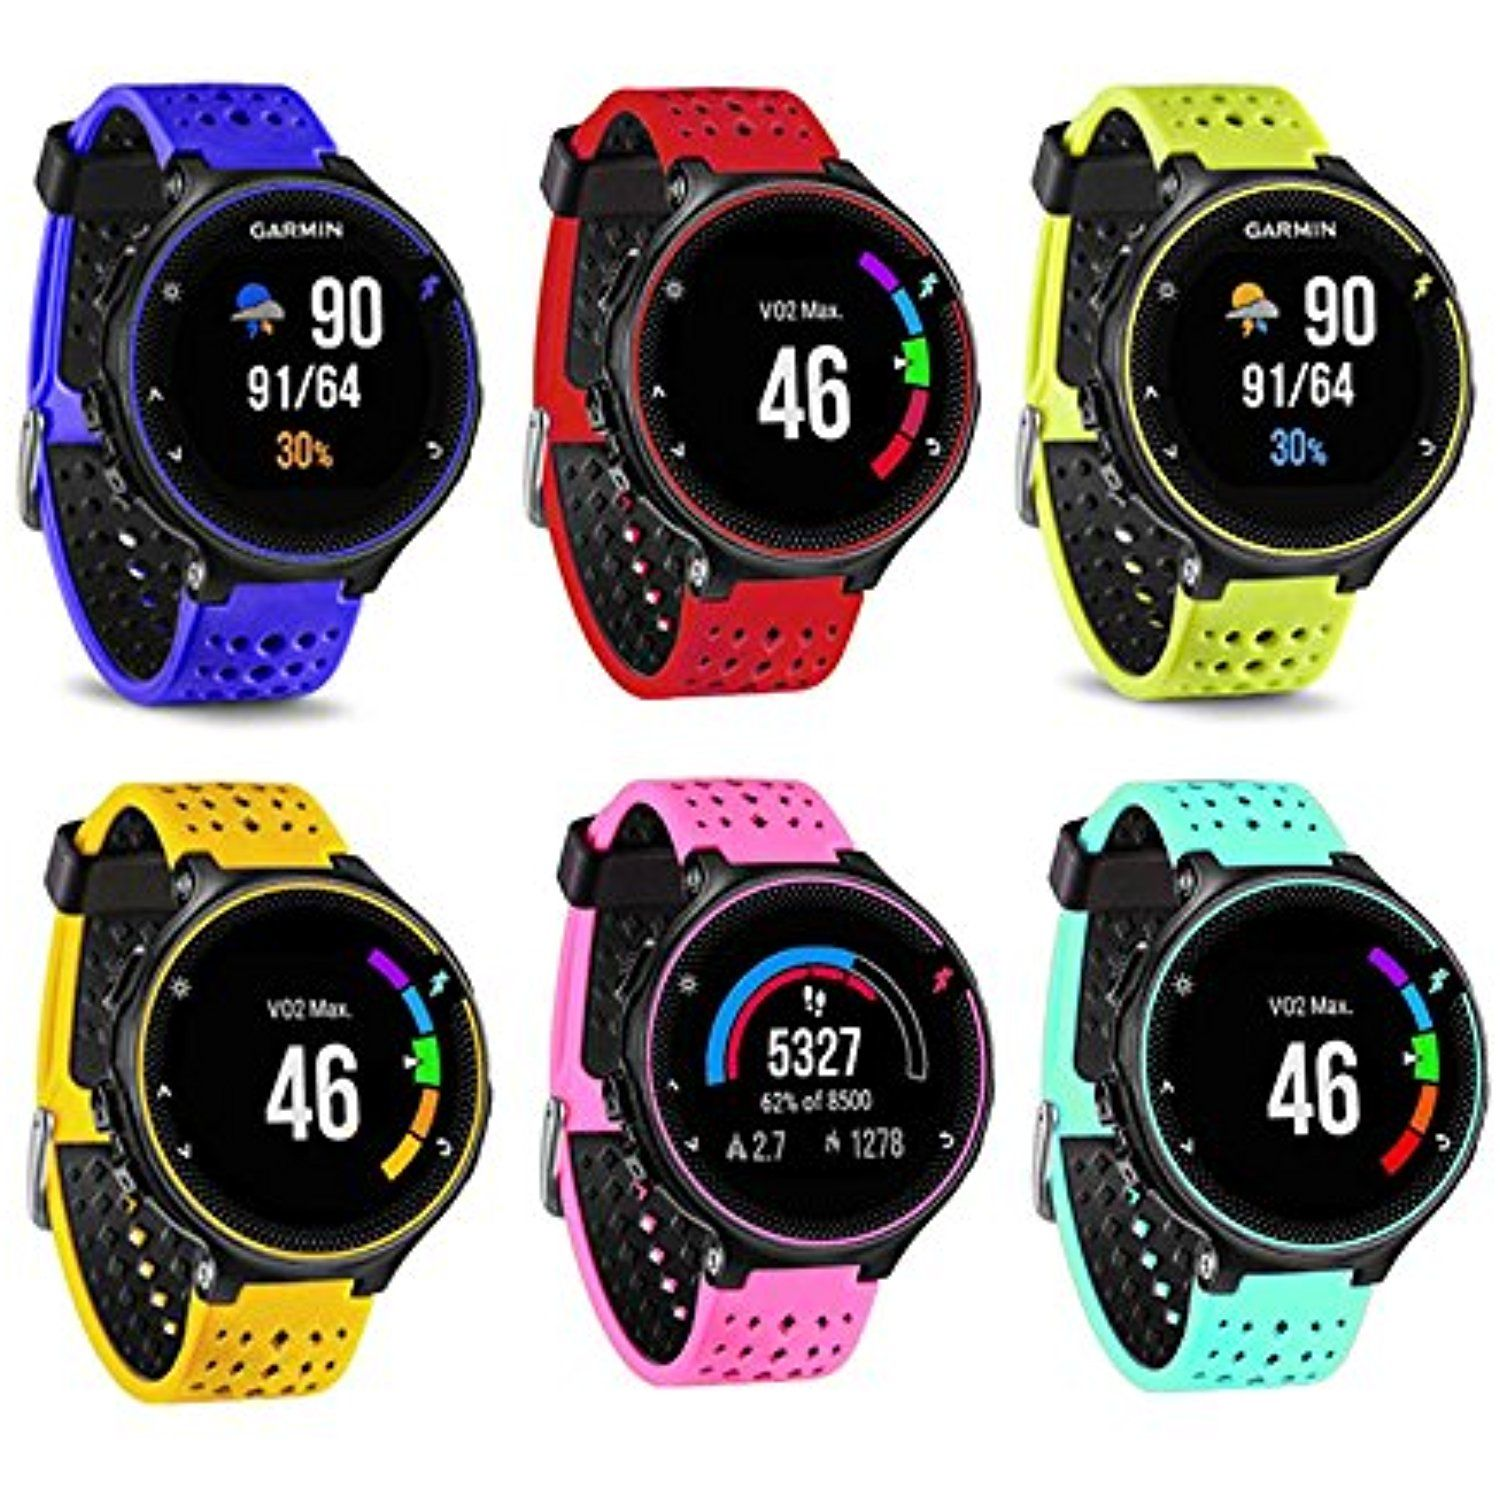 Silicone Replacement Fitness Bands Strap for Garmin Forerunner 220 230 235 620 630 735XT GPS Smart Replacement Band for Garmin Forerunner 220 230 235 620 630 735XT